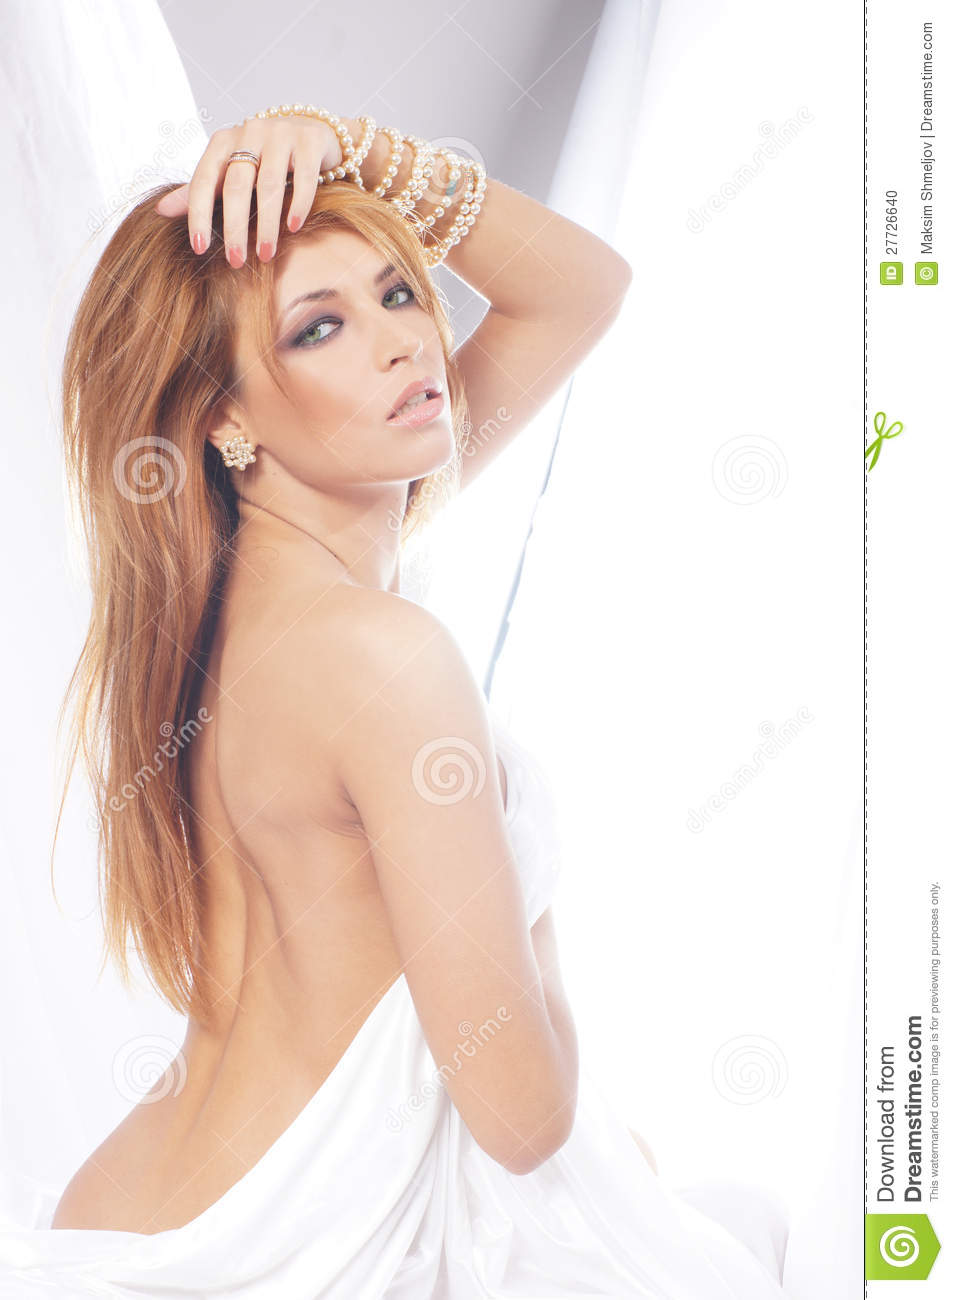 That redhead woman posing